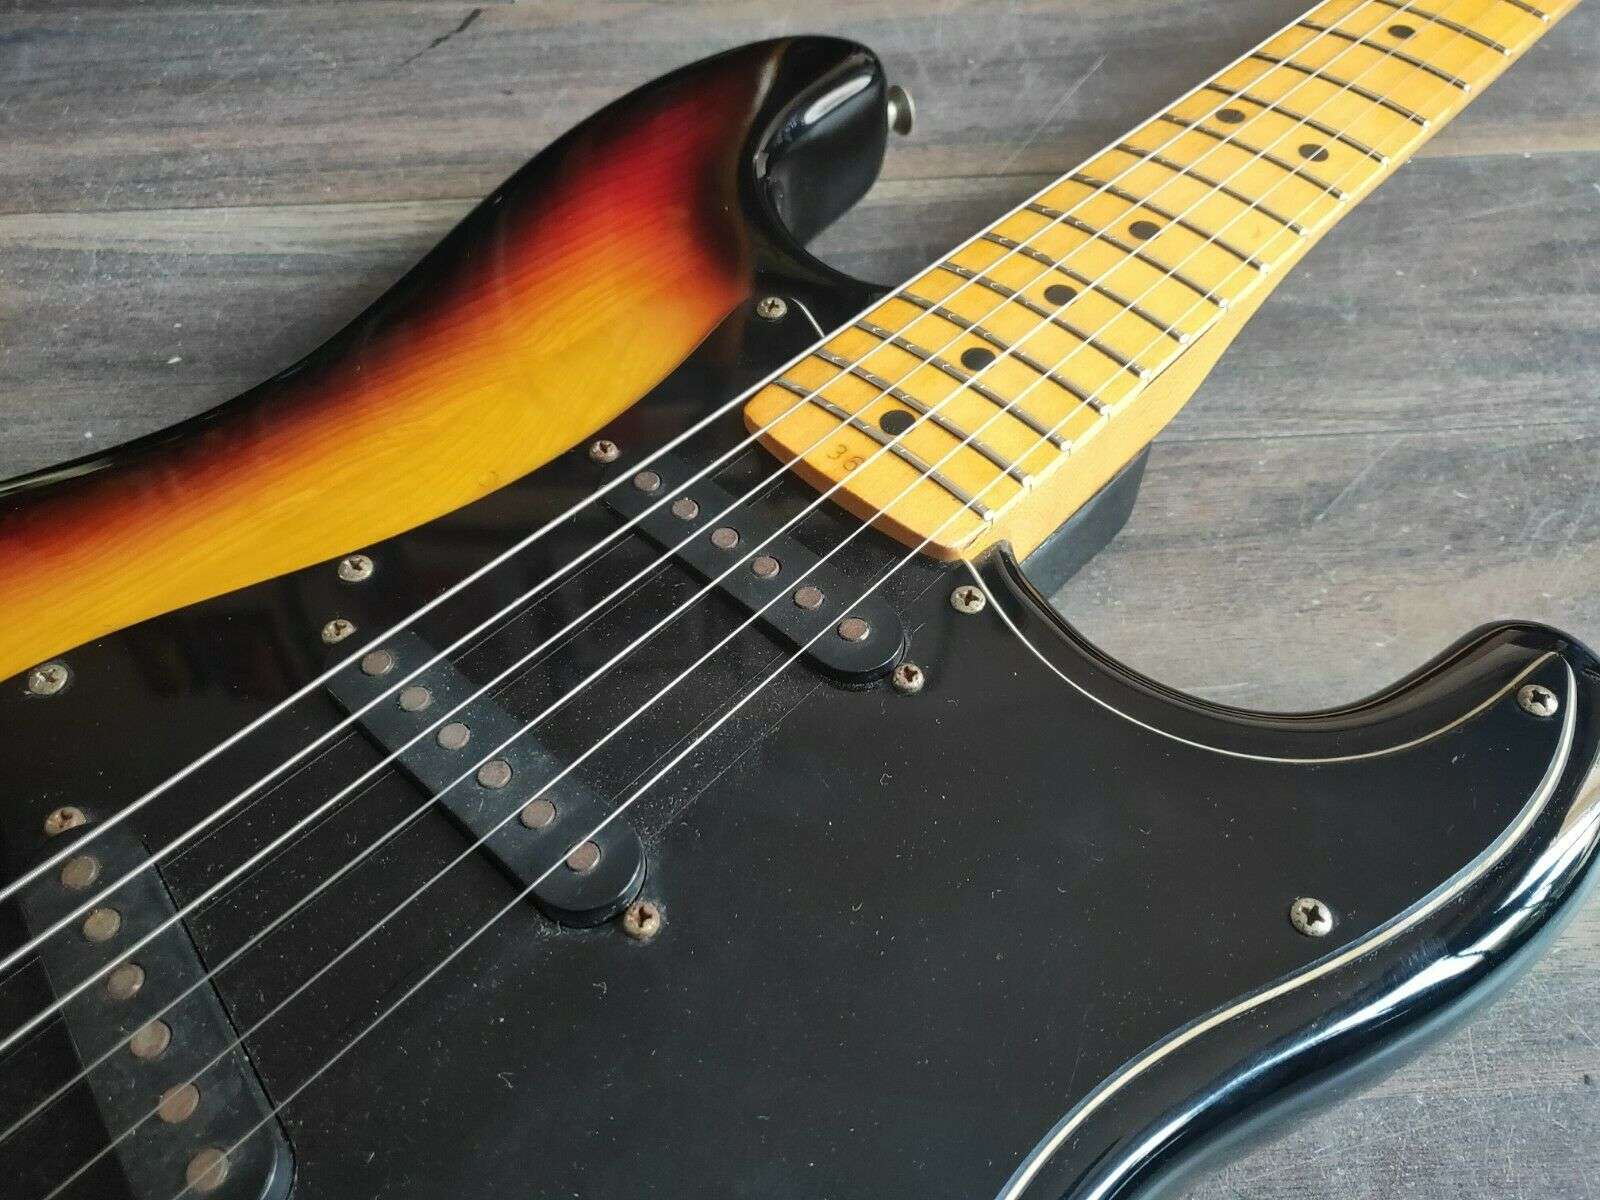 1979 Tokai SS-36 Silver Star Stratocaster (Made in Japan)